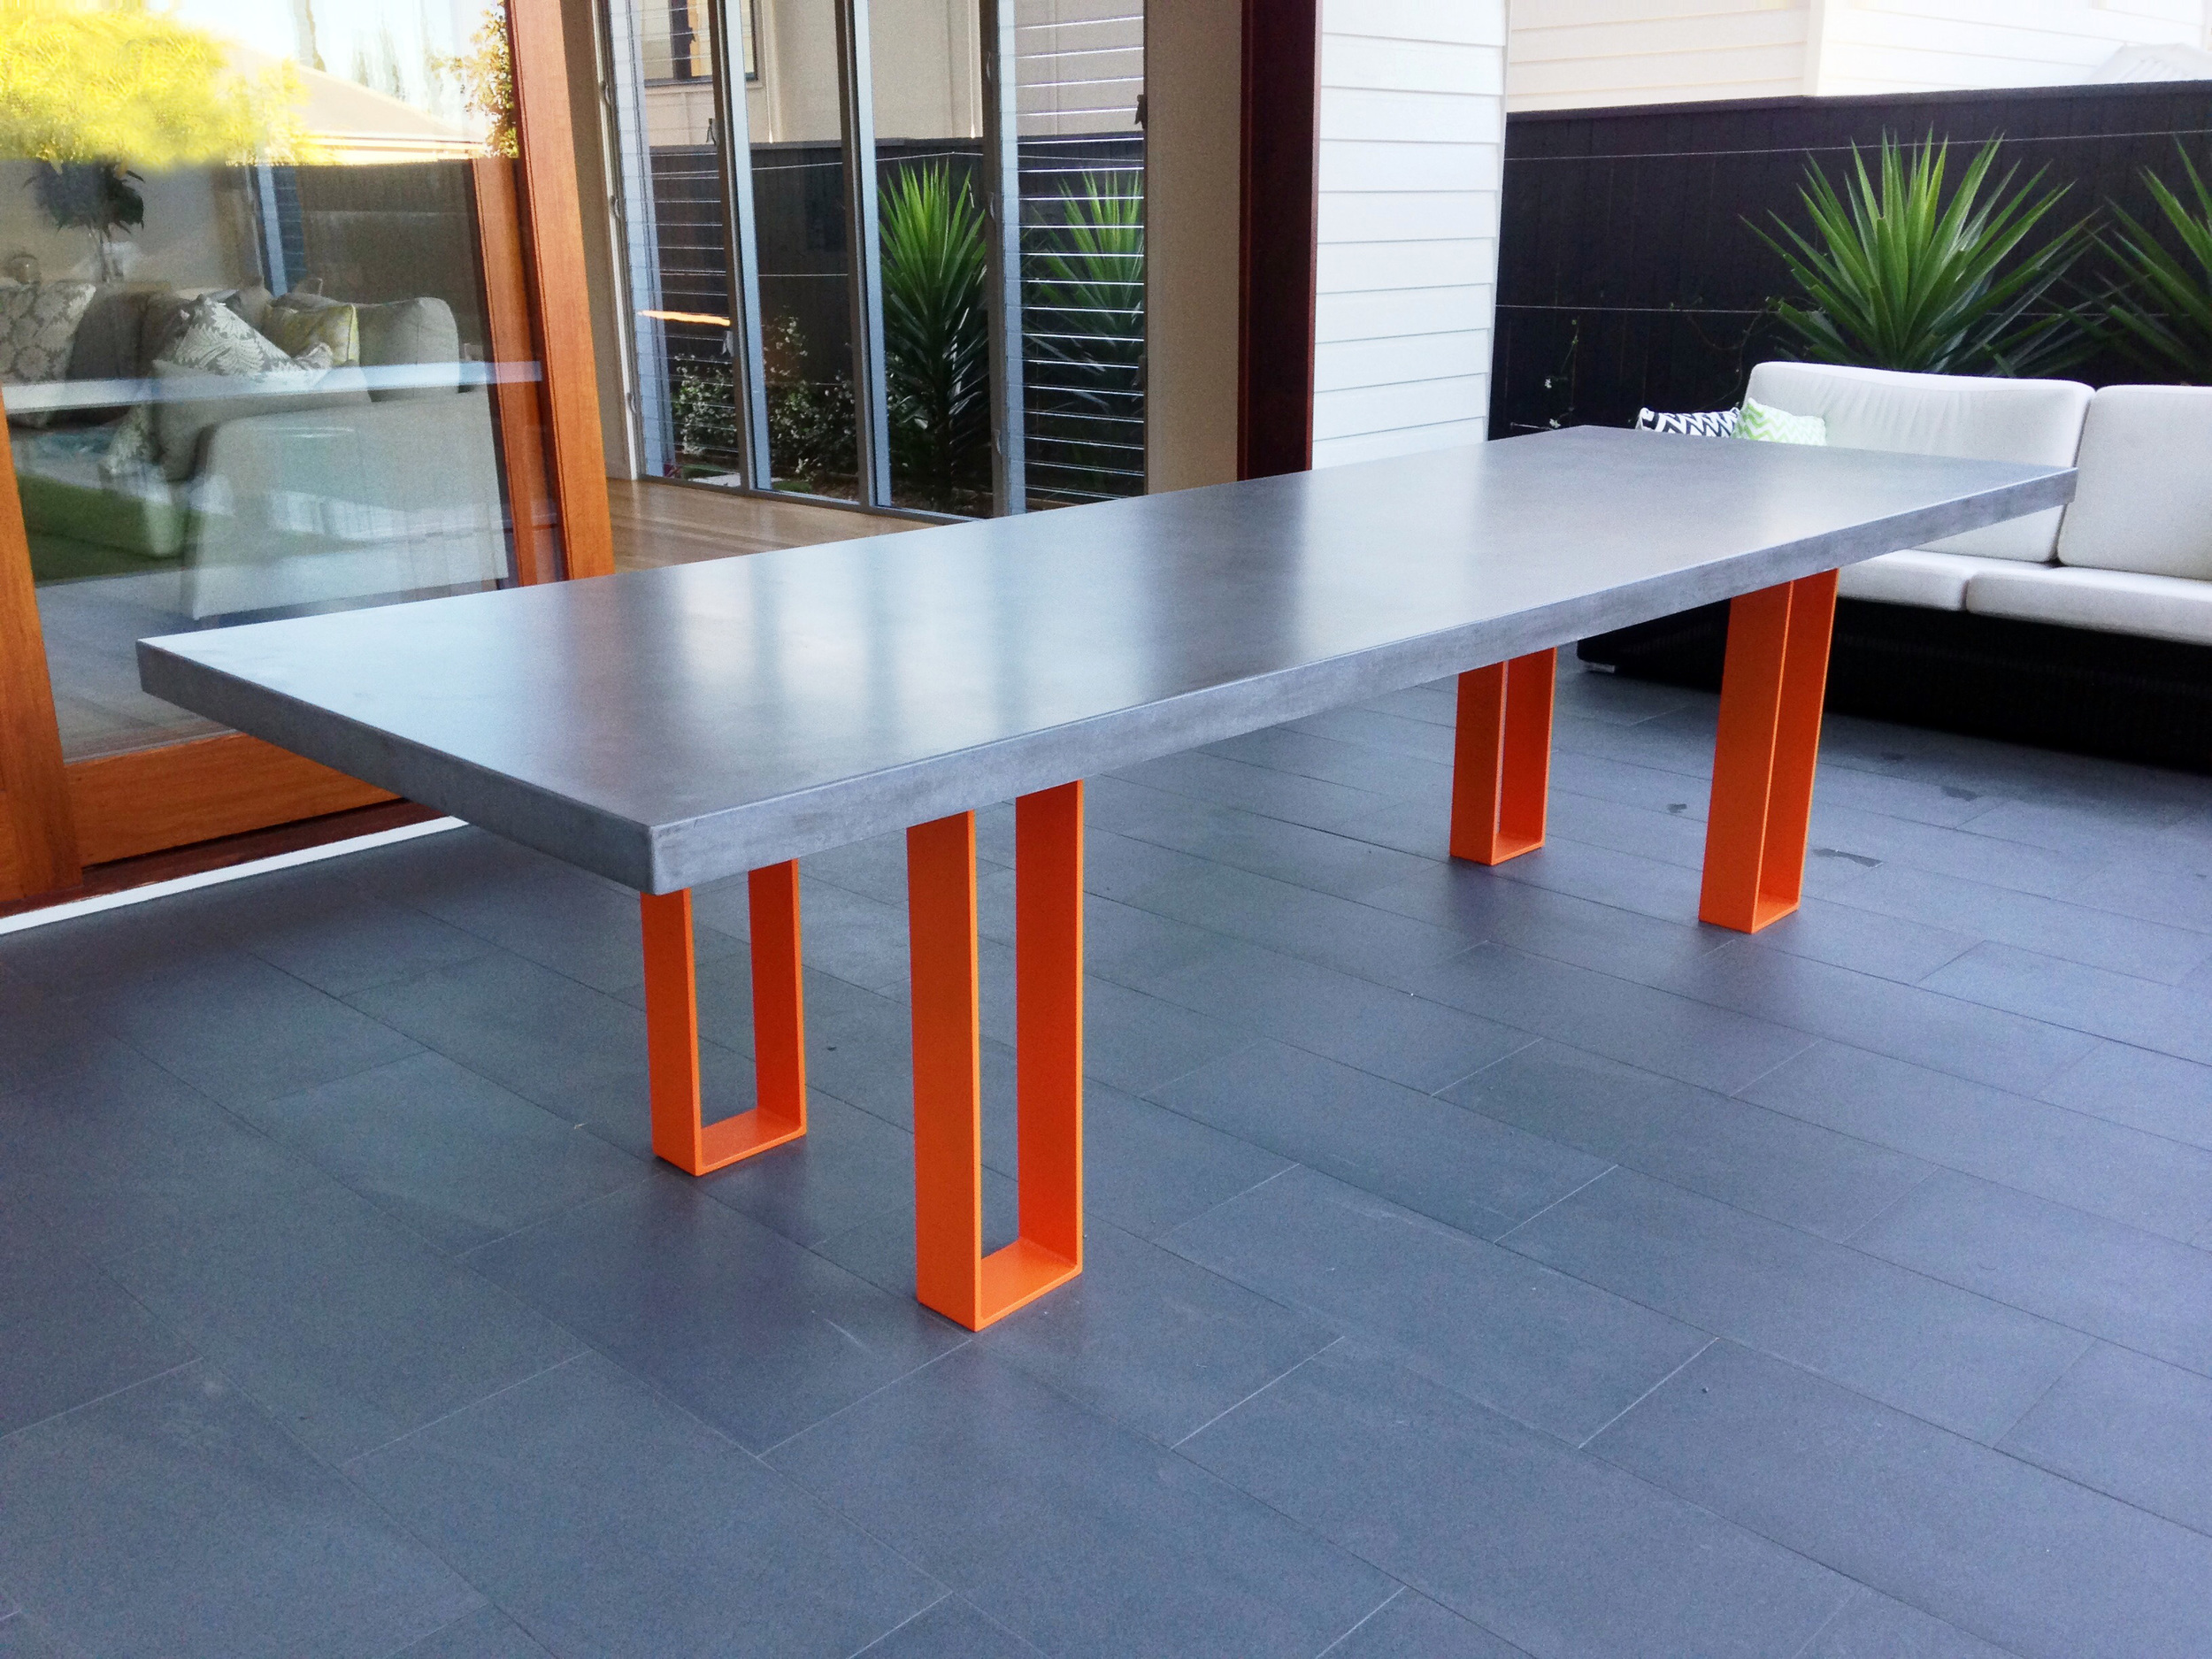 Tikko Concrete Dining Table - 12 Seat